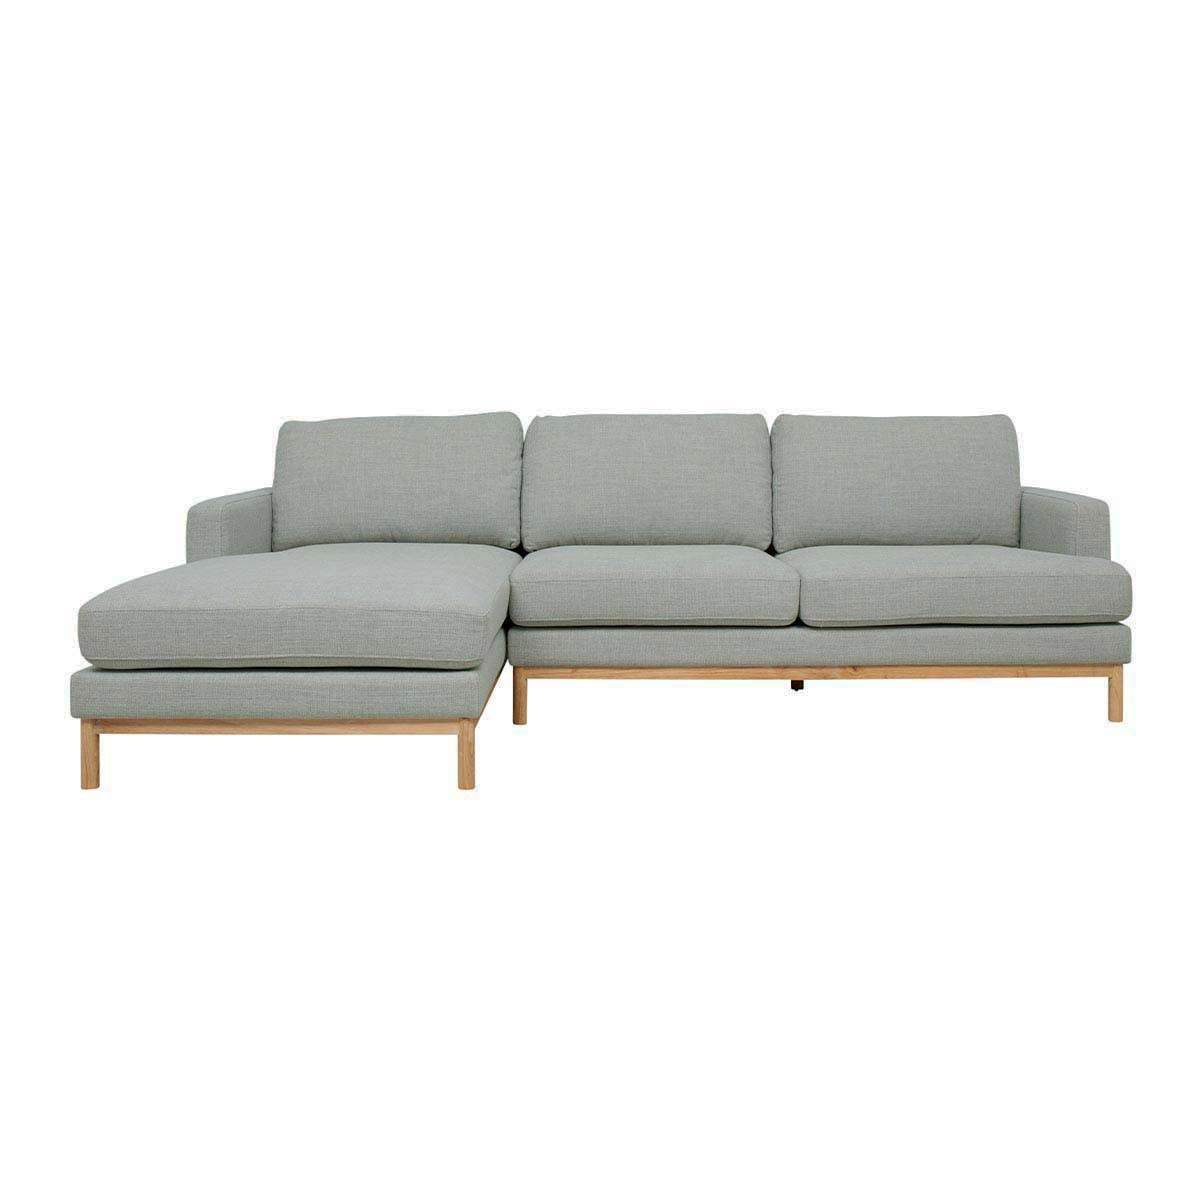 Atticus 2.5 Seater + LHF Chaise in Bristol Seafoam by OzDesignFurniture, a Sofas for sale on Style Sourcebook